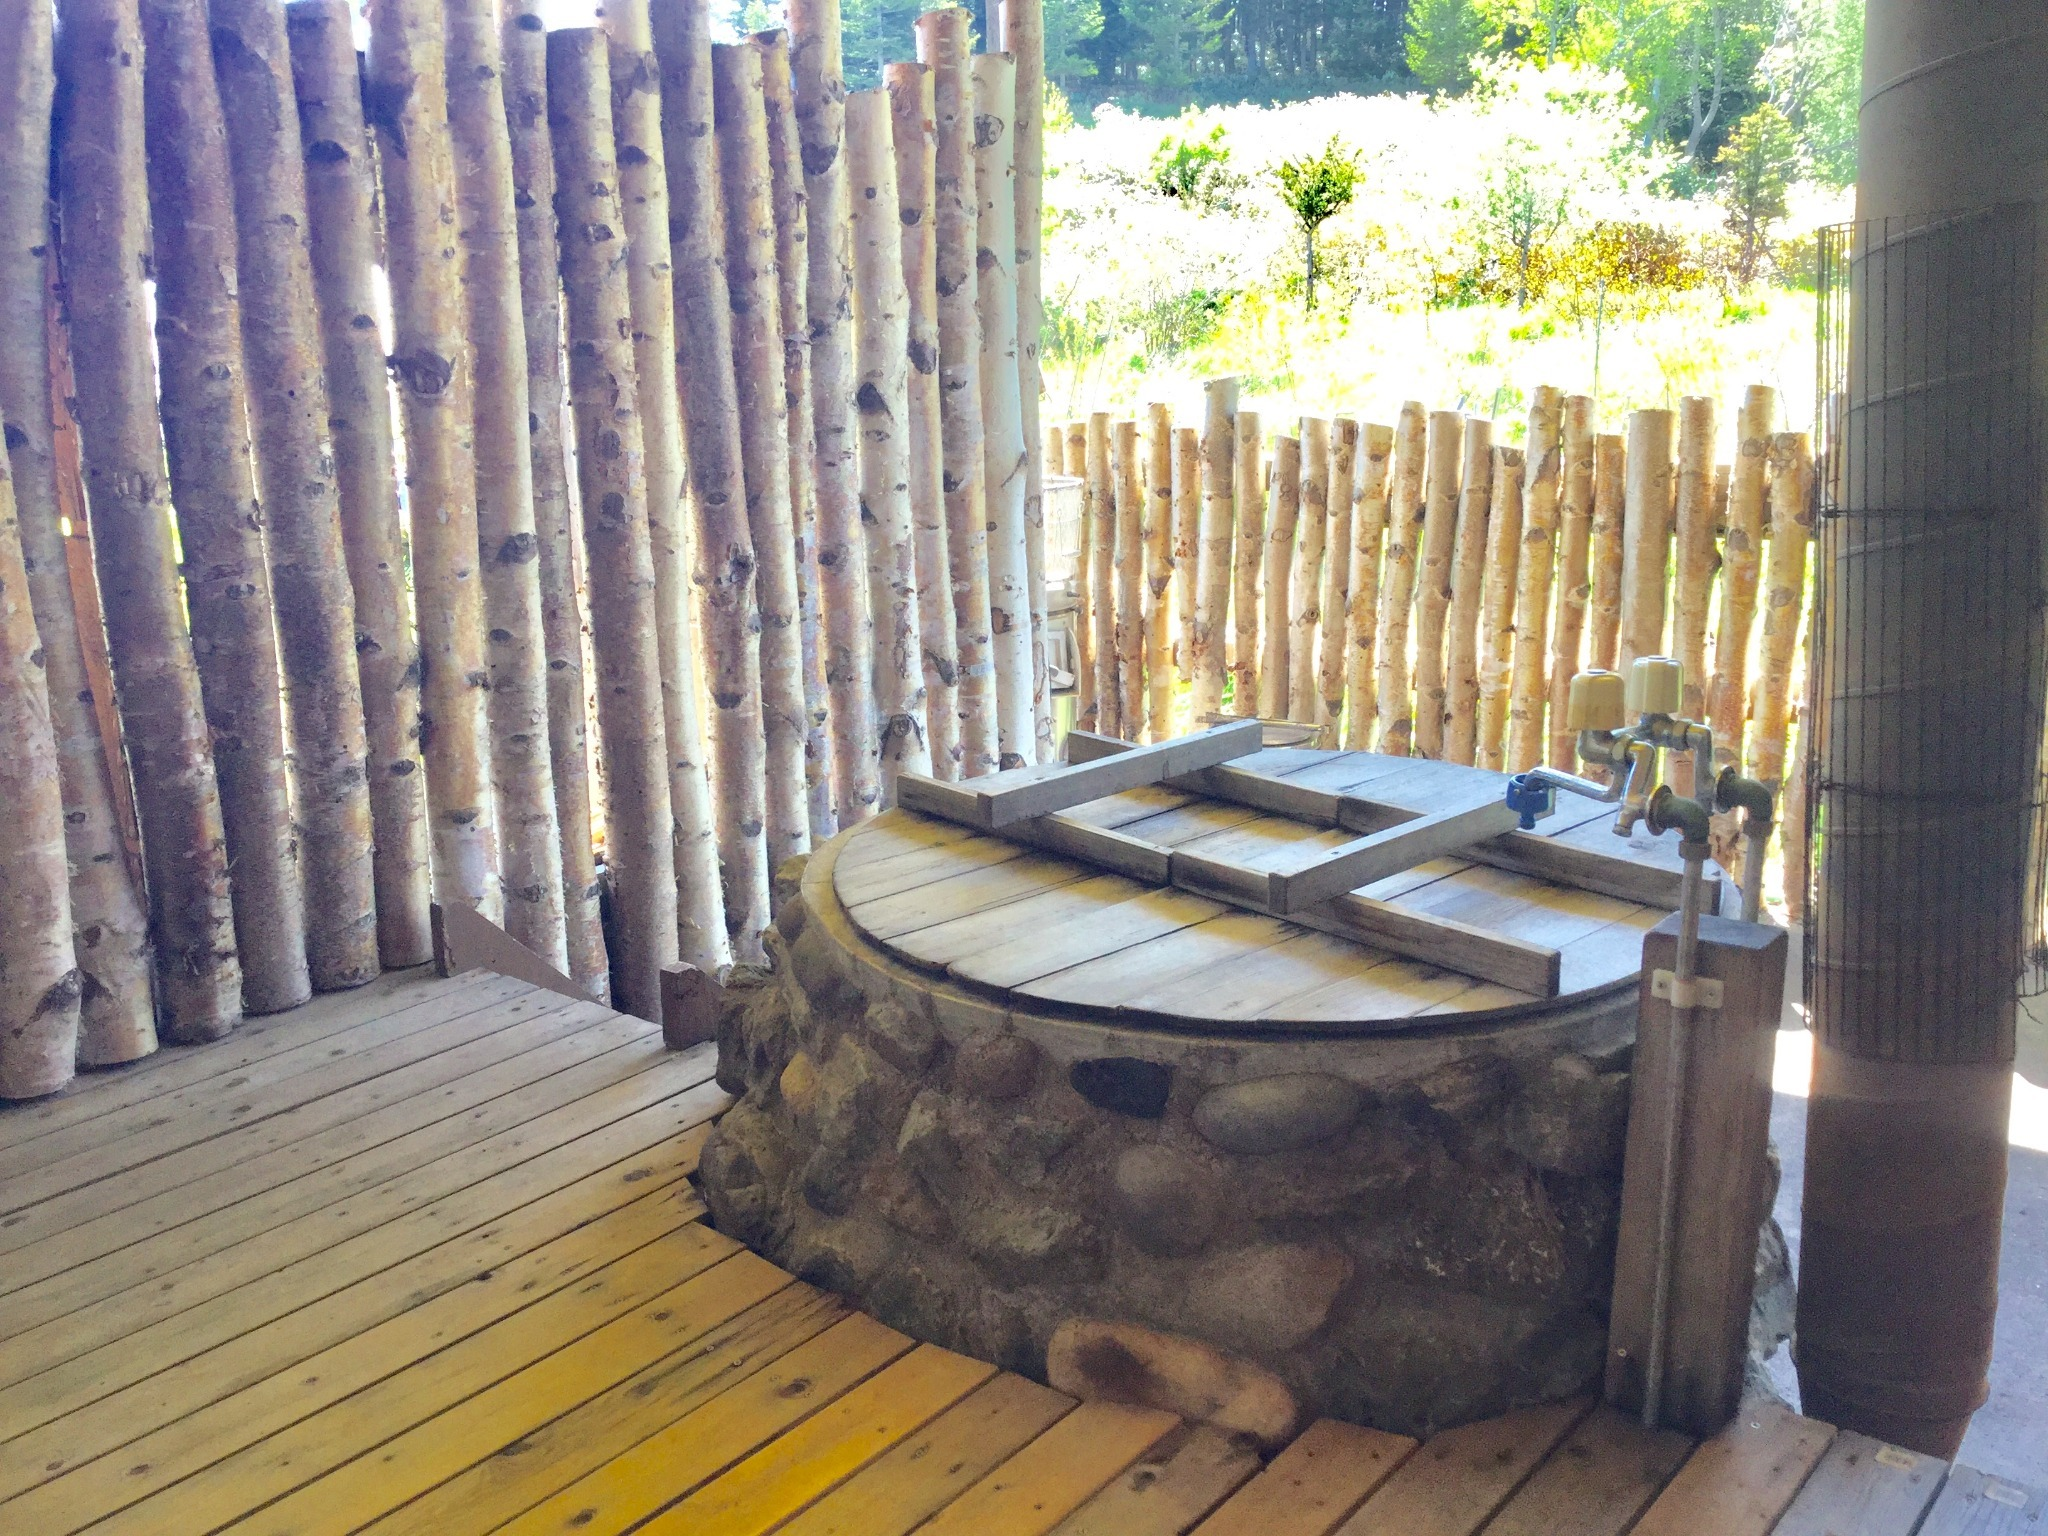 """【Open air bath】A bath called """"GOEMON-BURO"""" of Japan. Reservation required, 1000 yen/group."""